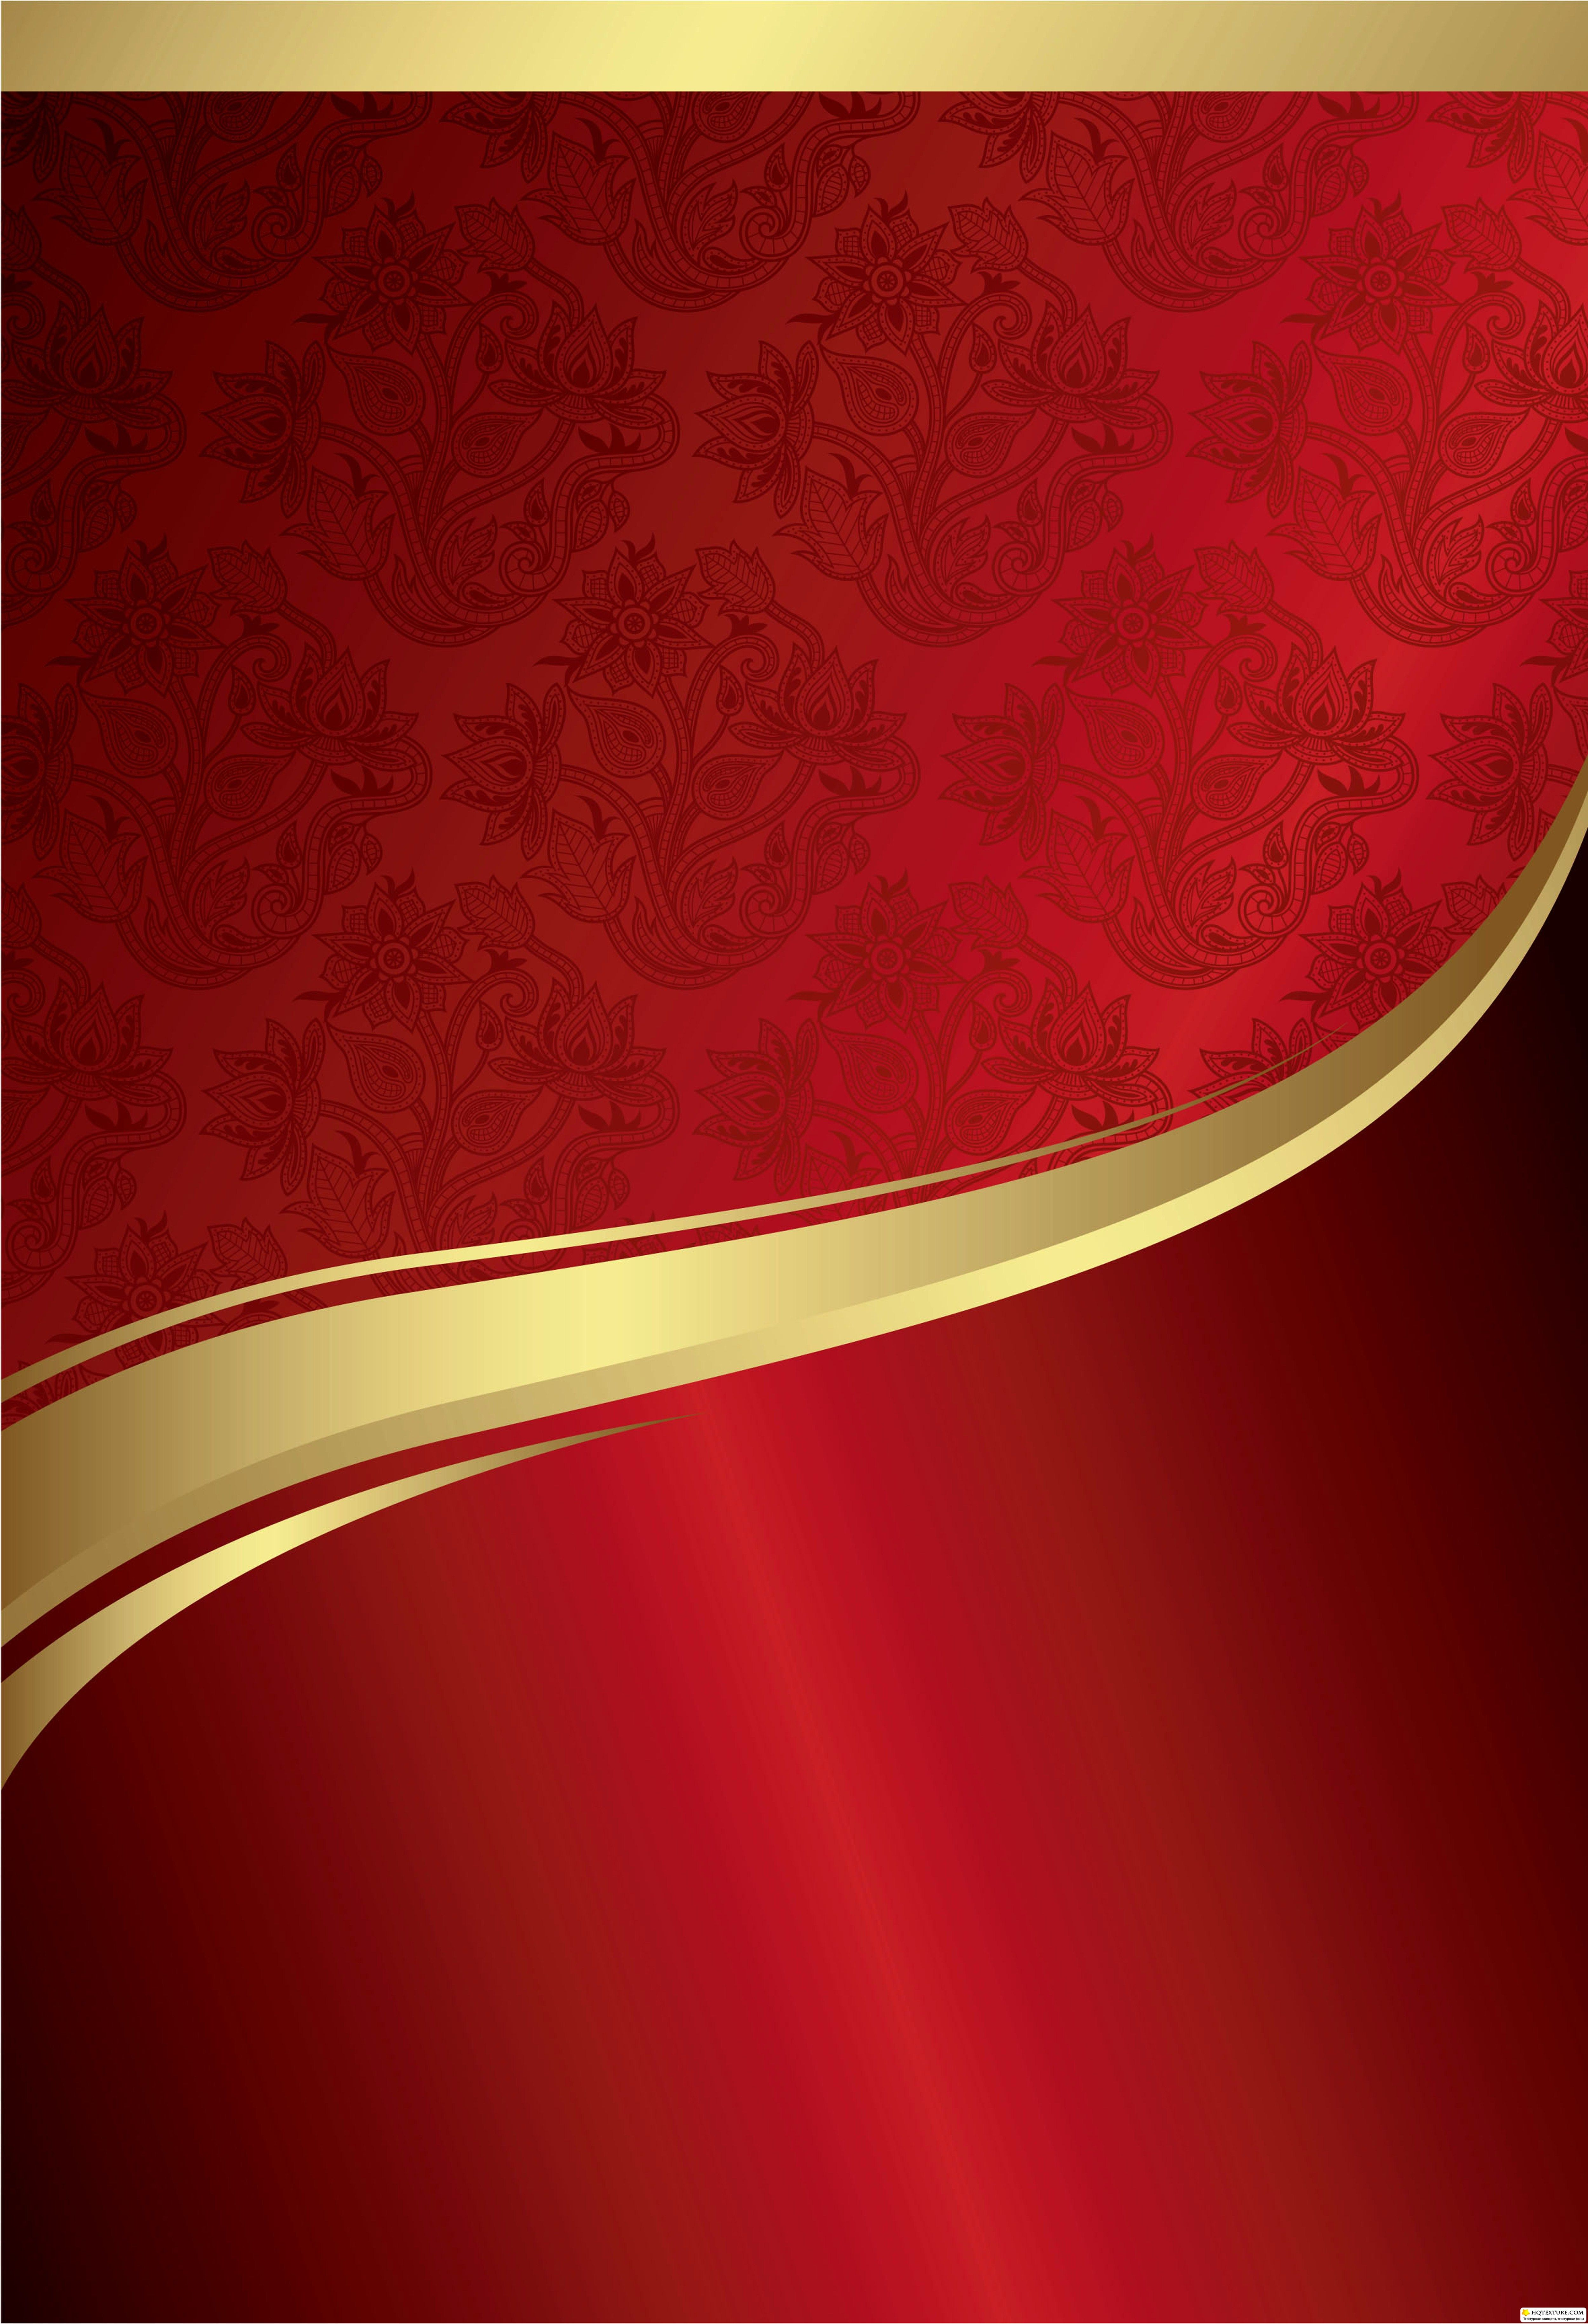 Gold And Red Wallpaper Image Red And Gold Wallpaper Gold Wallpaper Background Red Wallpaper